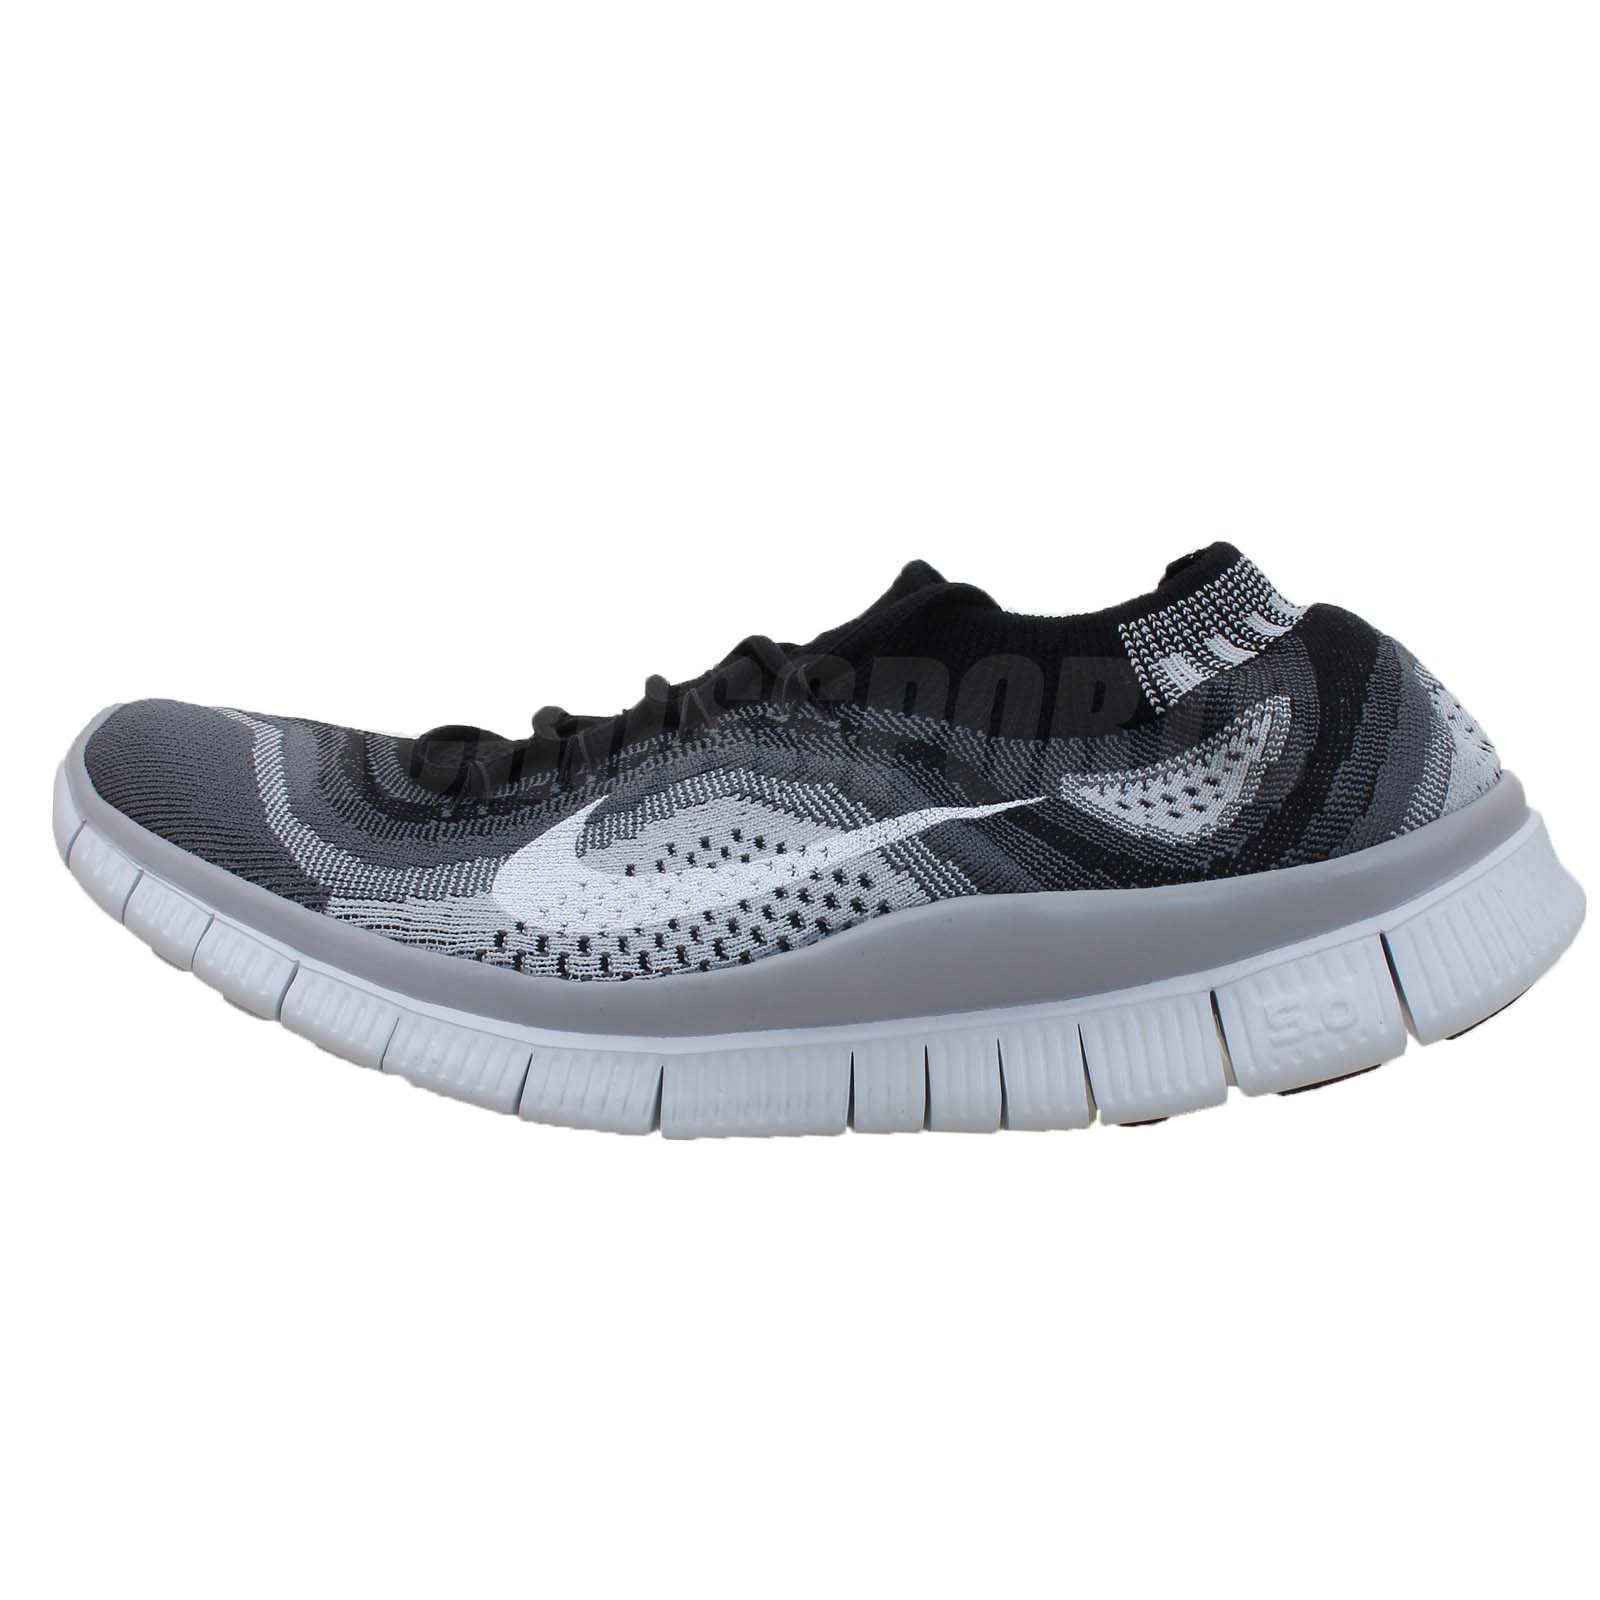 nike barefoot running shoes - 28 images - barefoot running ...